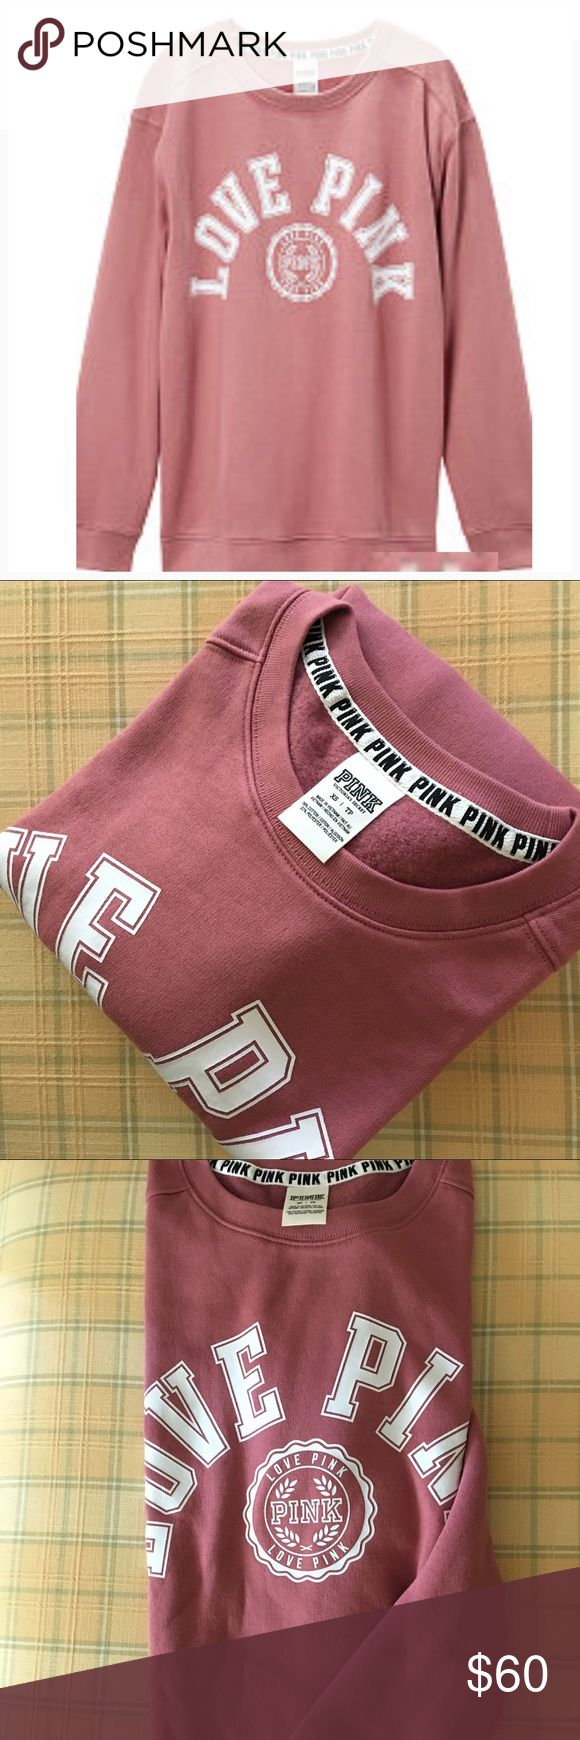 Victoria's Secret PINK Crew Rare Color Comfy and over sized,this classic crew is perfect for game day! From the Victoria's Secret PINK Collegiate Collection.  Oversized Comfy....RARE Color is Soft Begonia PINK Victoria's Secret Tops Sweatshirts & Hoodies